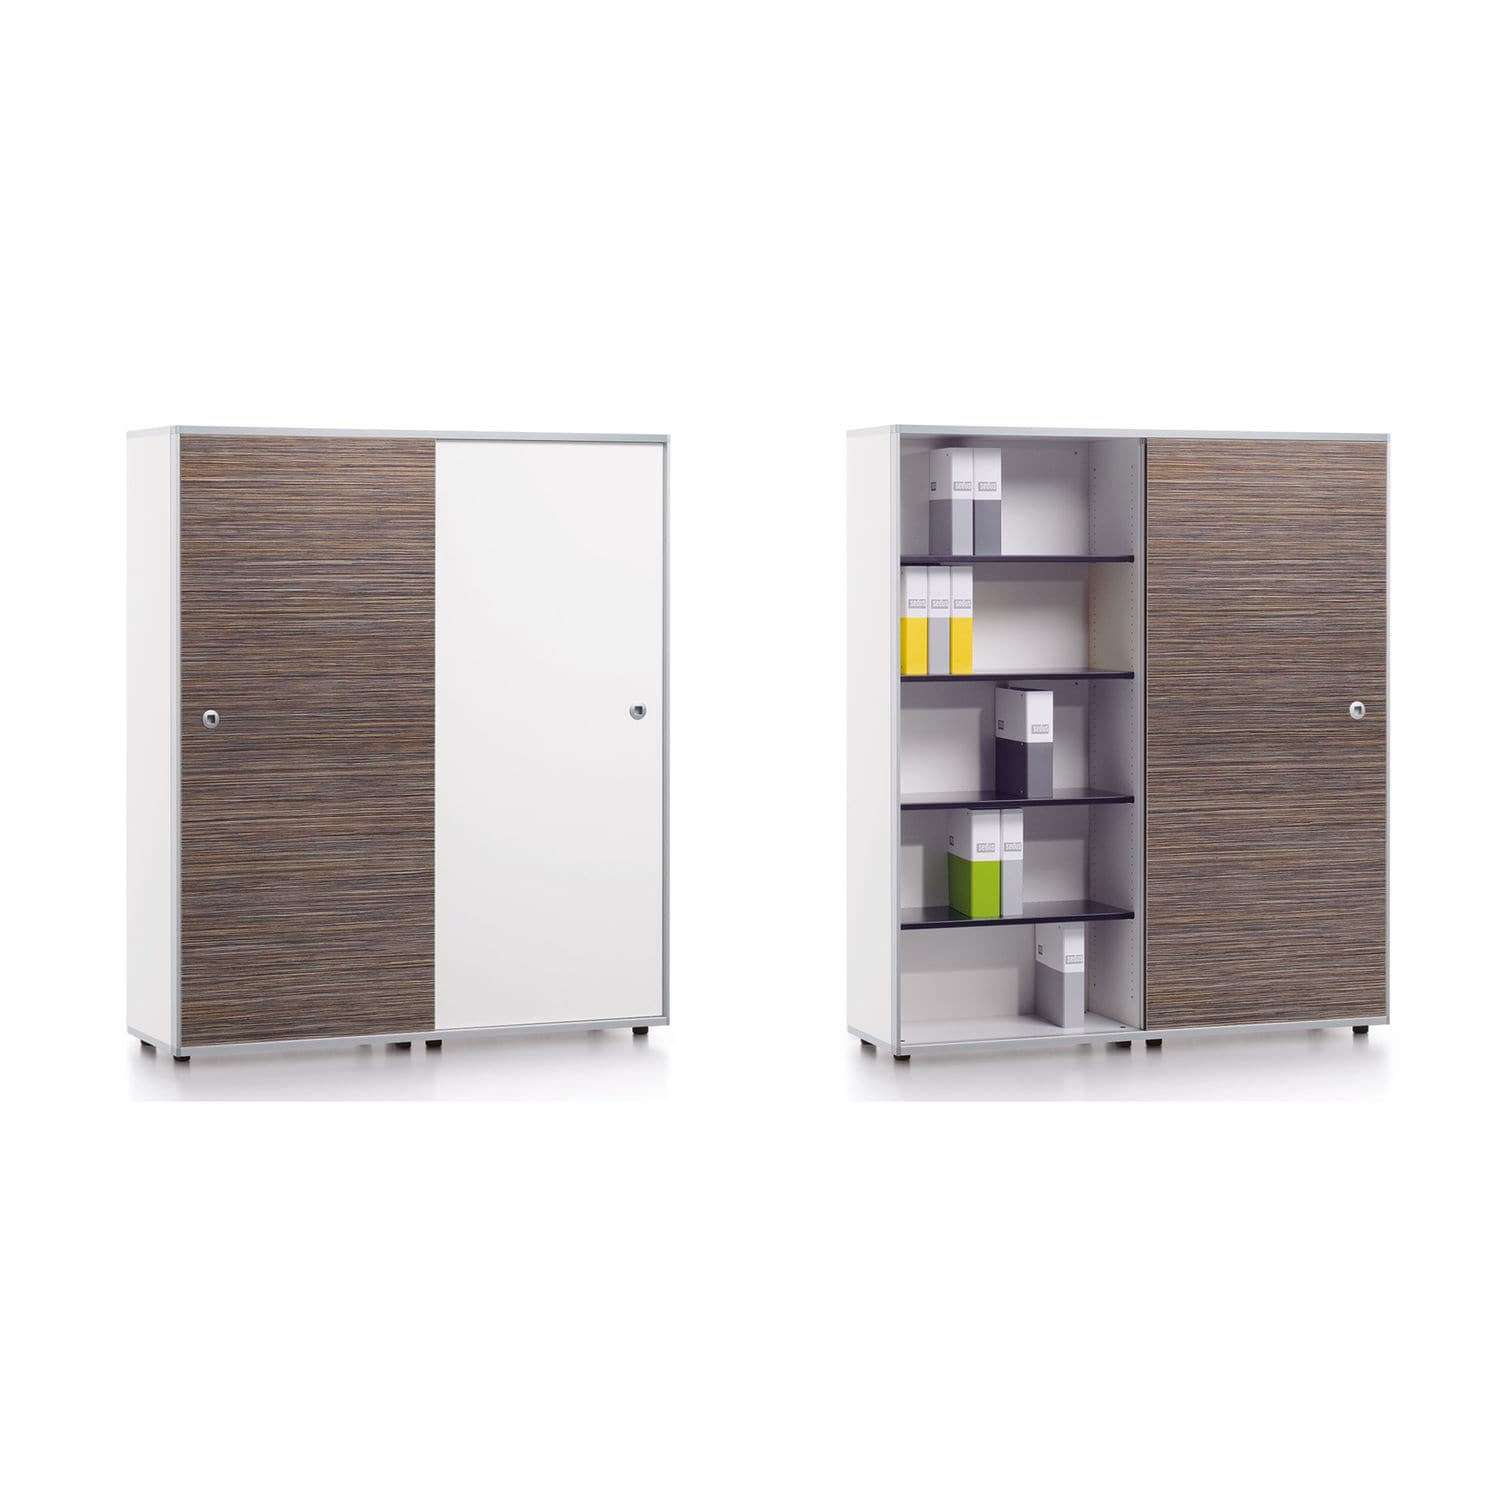 Tall Filing Cabinet Wooden With Sliding Door Contemporary Terri Tory By Formwelt Industriedesign